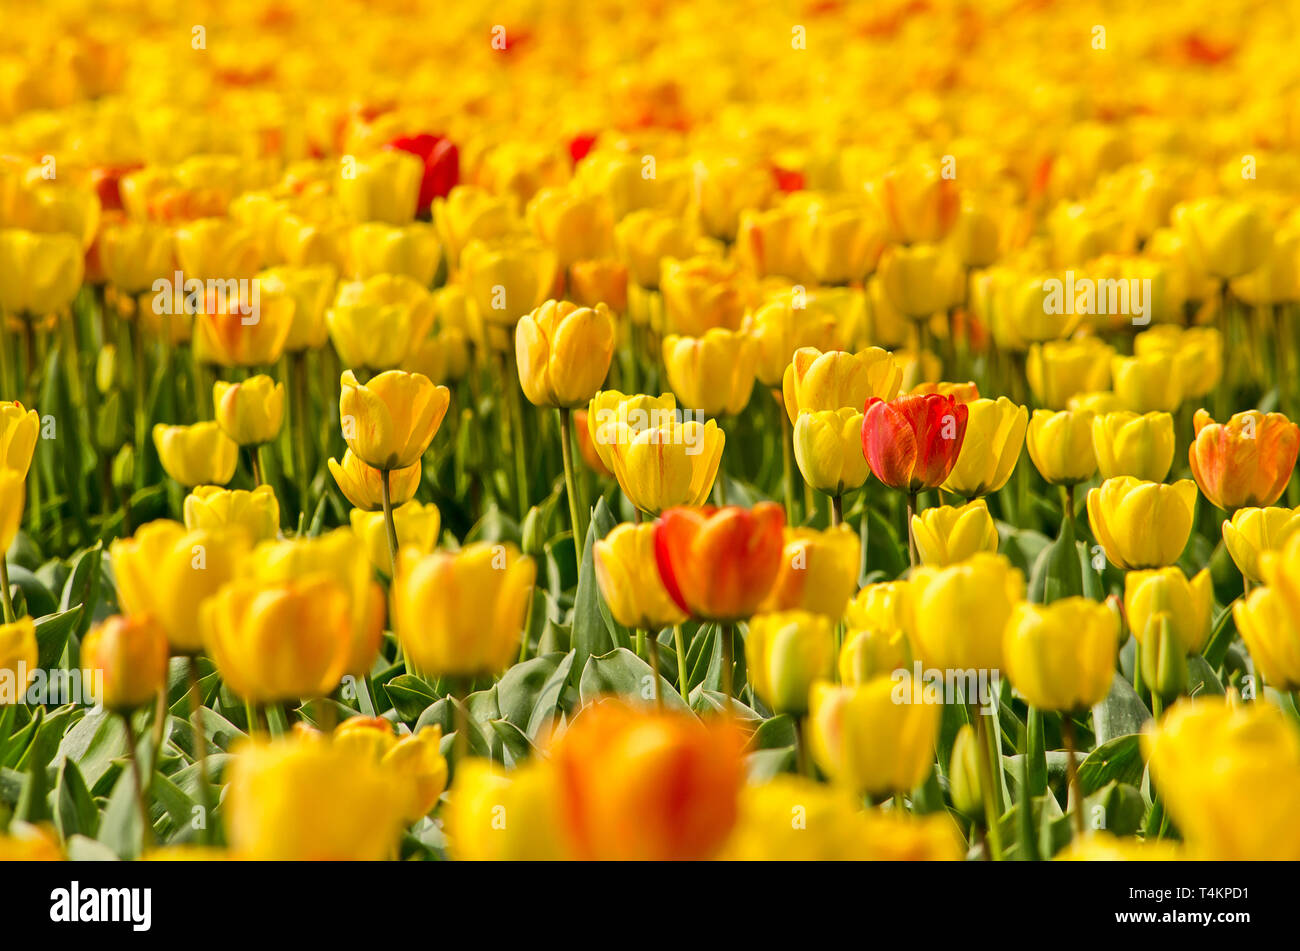 Close-up of a flower field near Noordwijkerhout, The Netherlands, with yellow tulips and some reddish orange accents - Stock Image